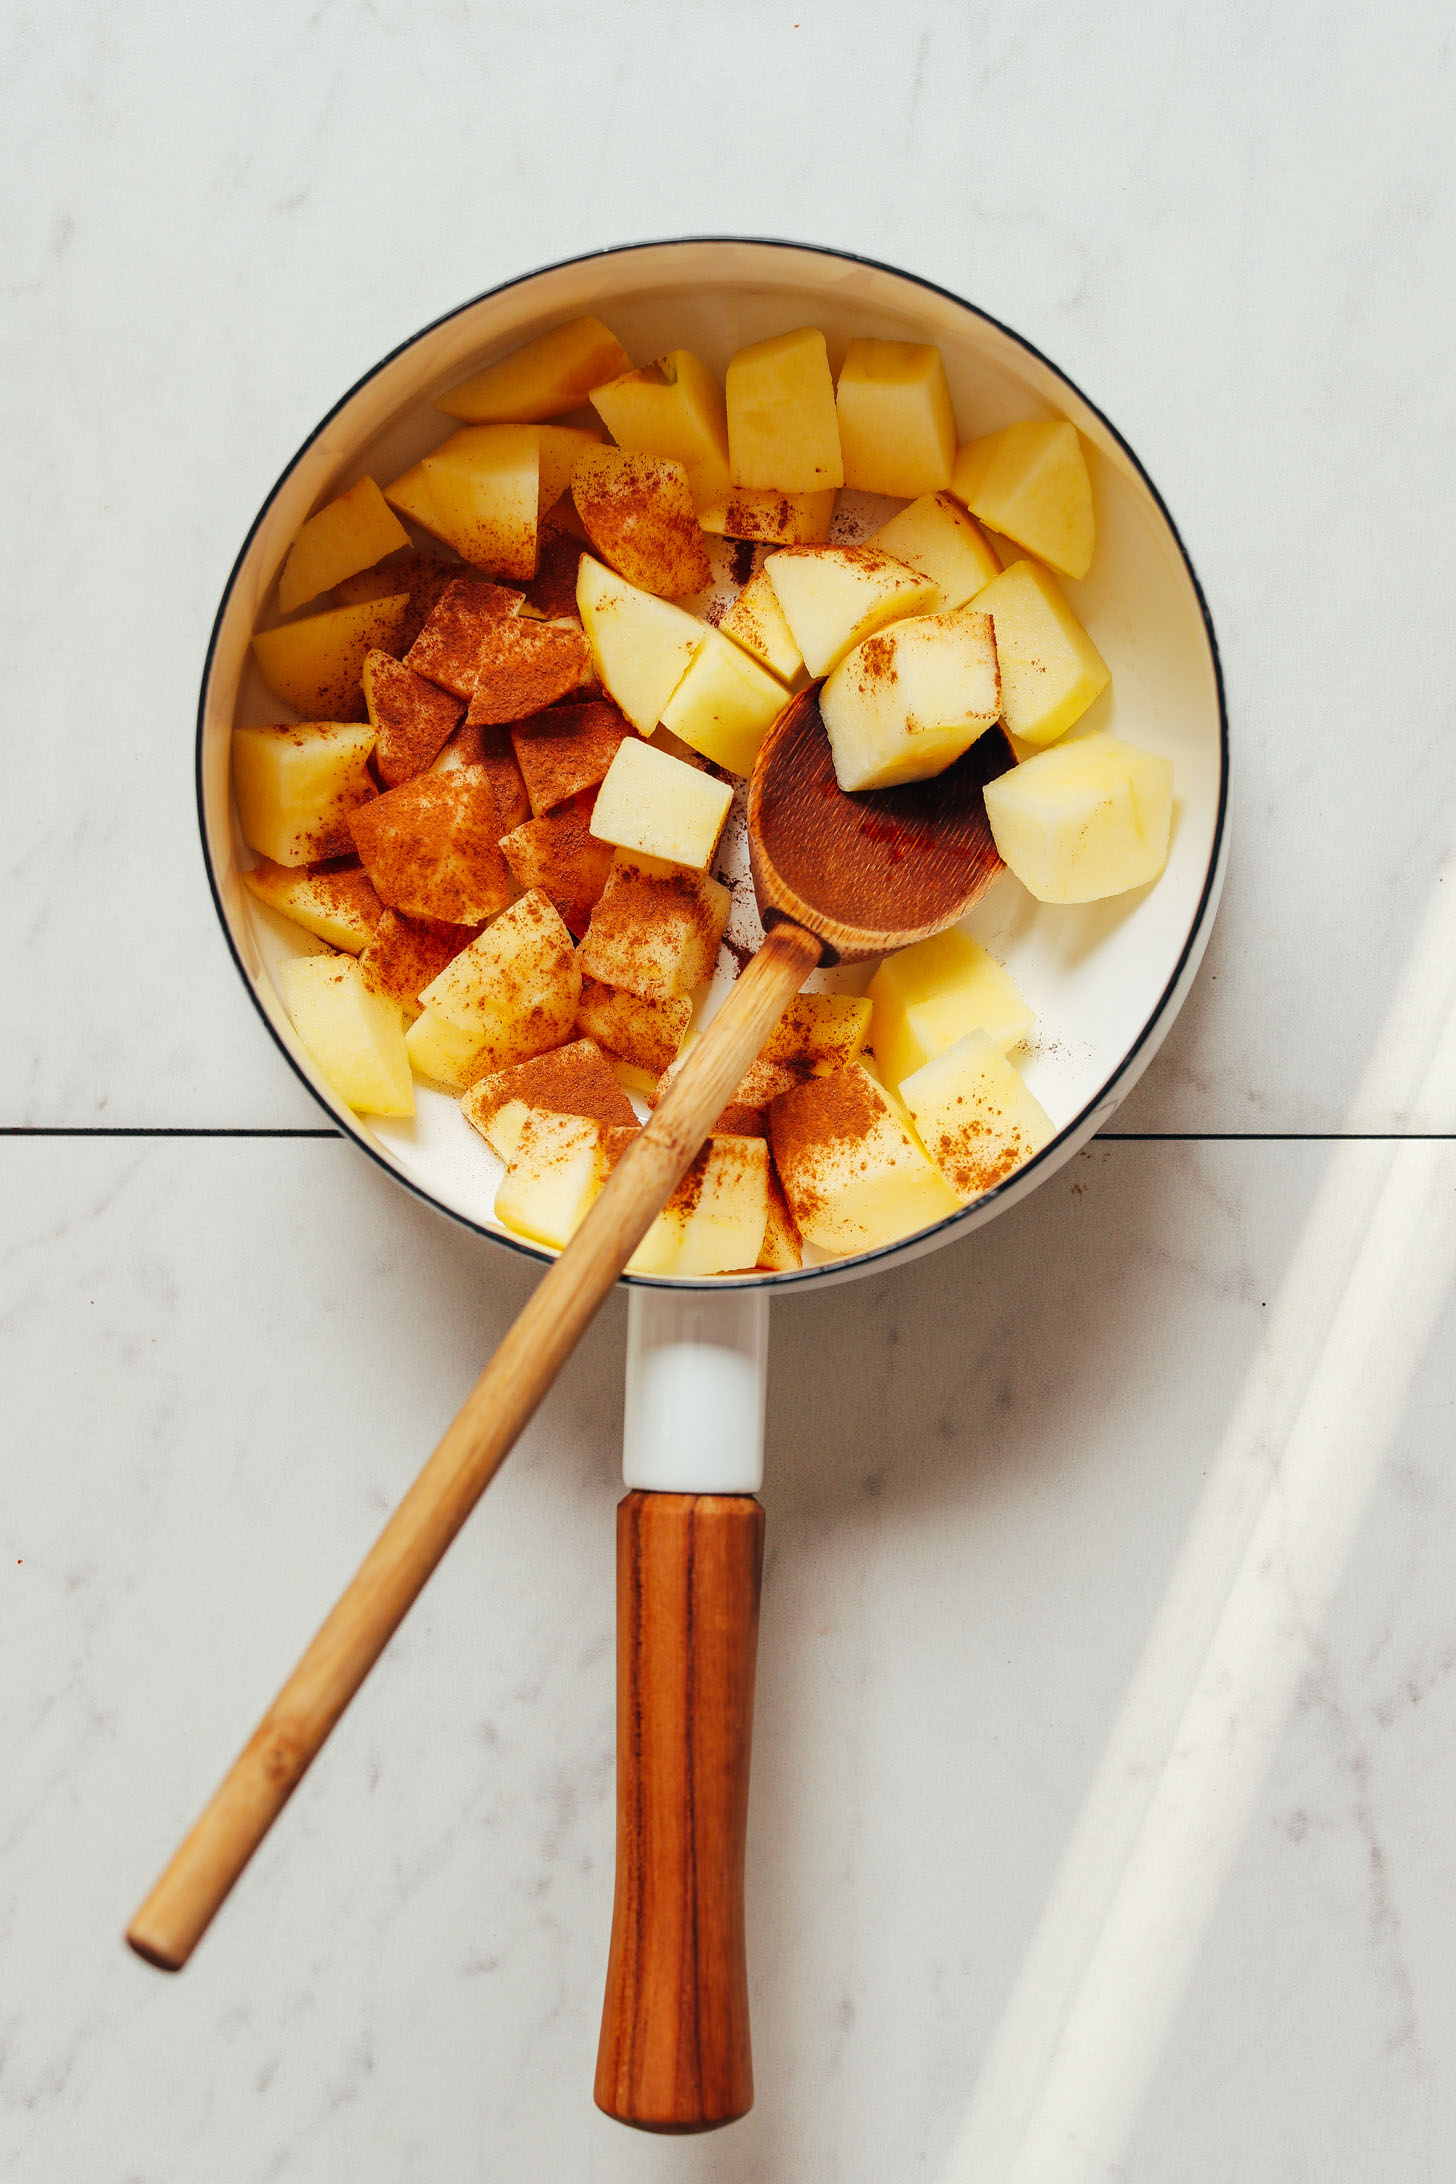 Diced apples and cinnamon in a saucepan for making our simple homemade applesauce recipe